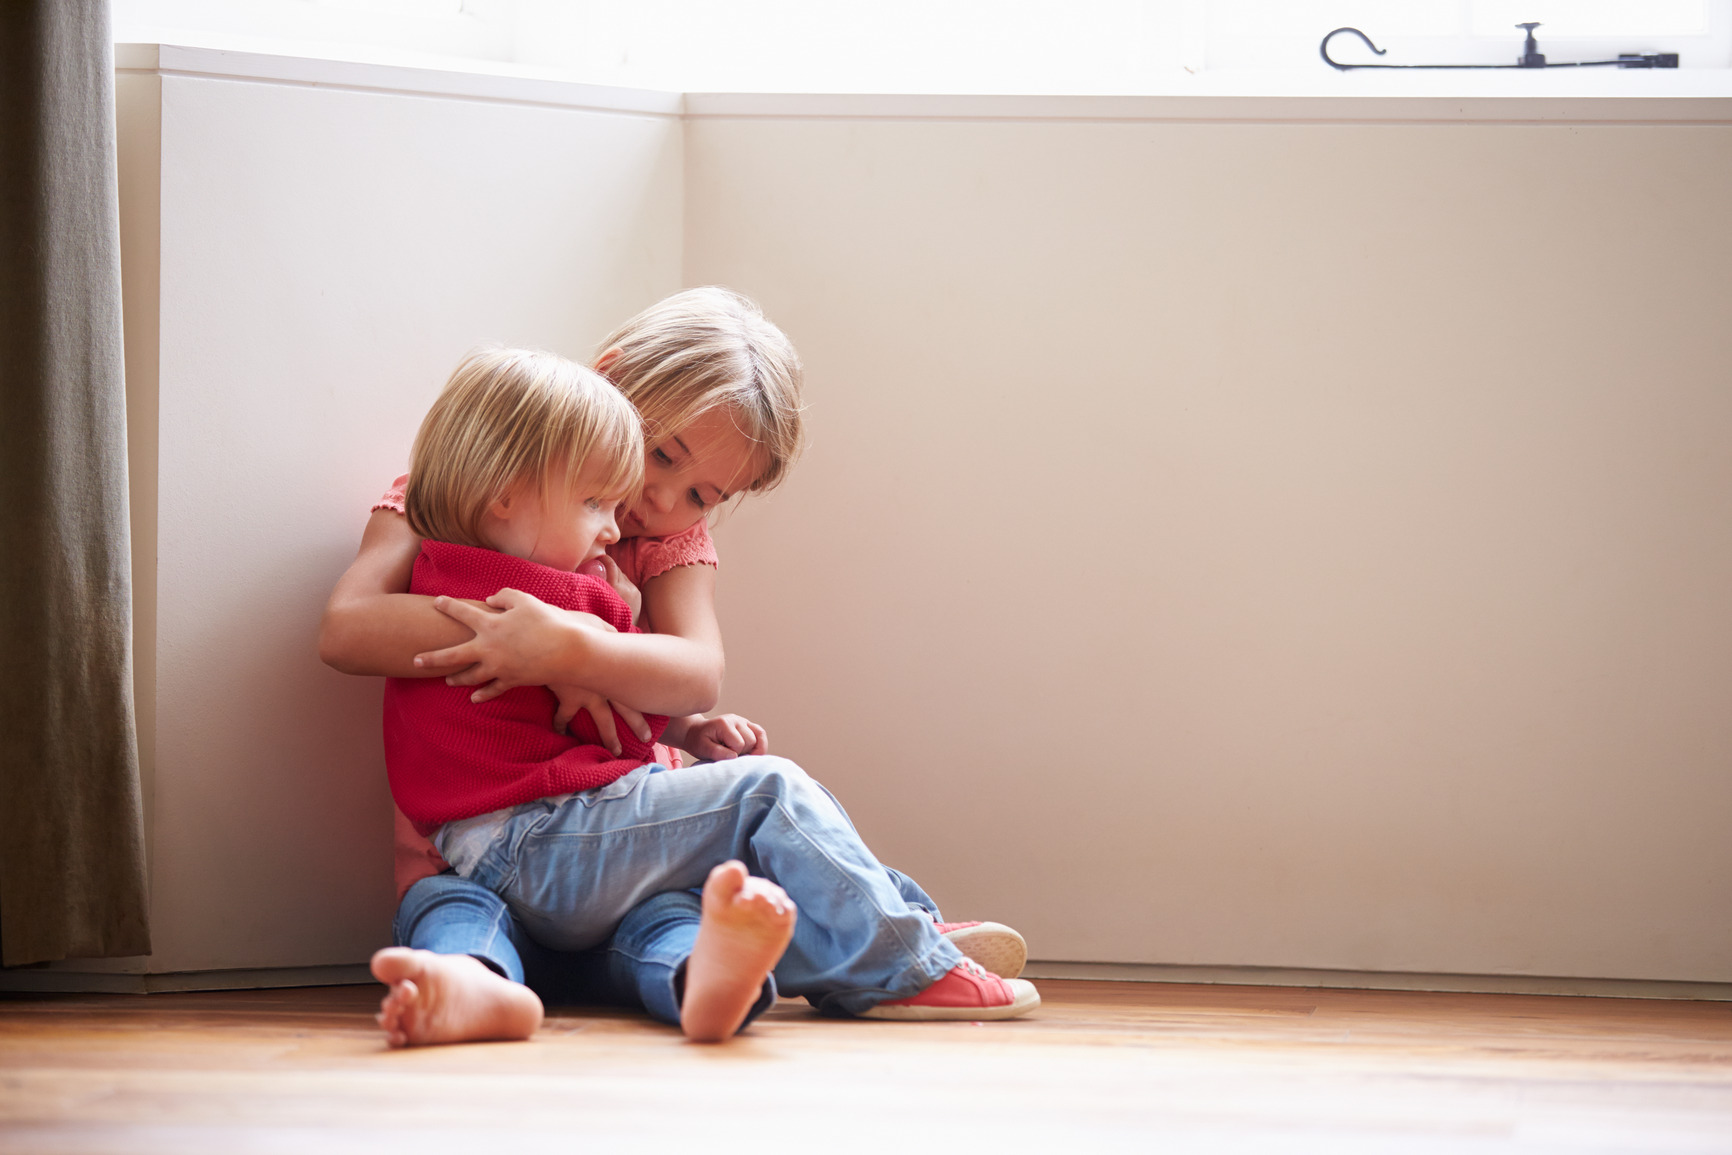 Tensions that begin in childhood can carry on into adult years. Photo credit: photodune.